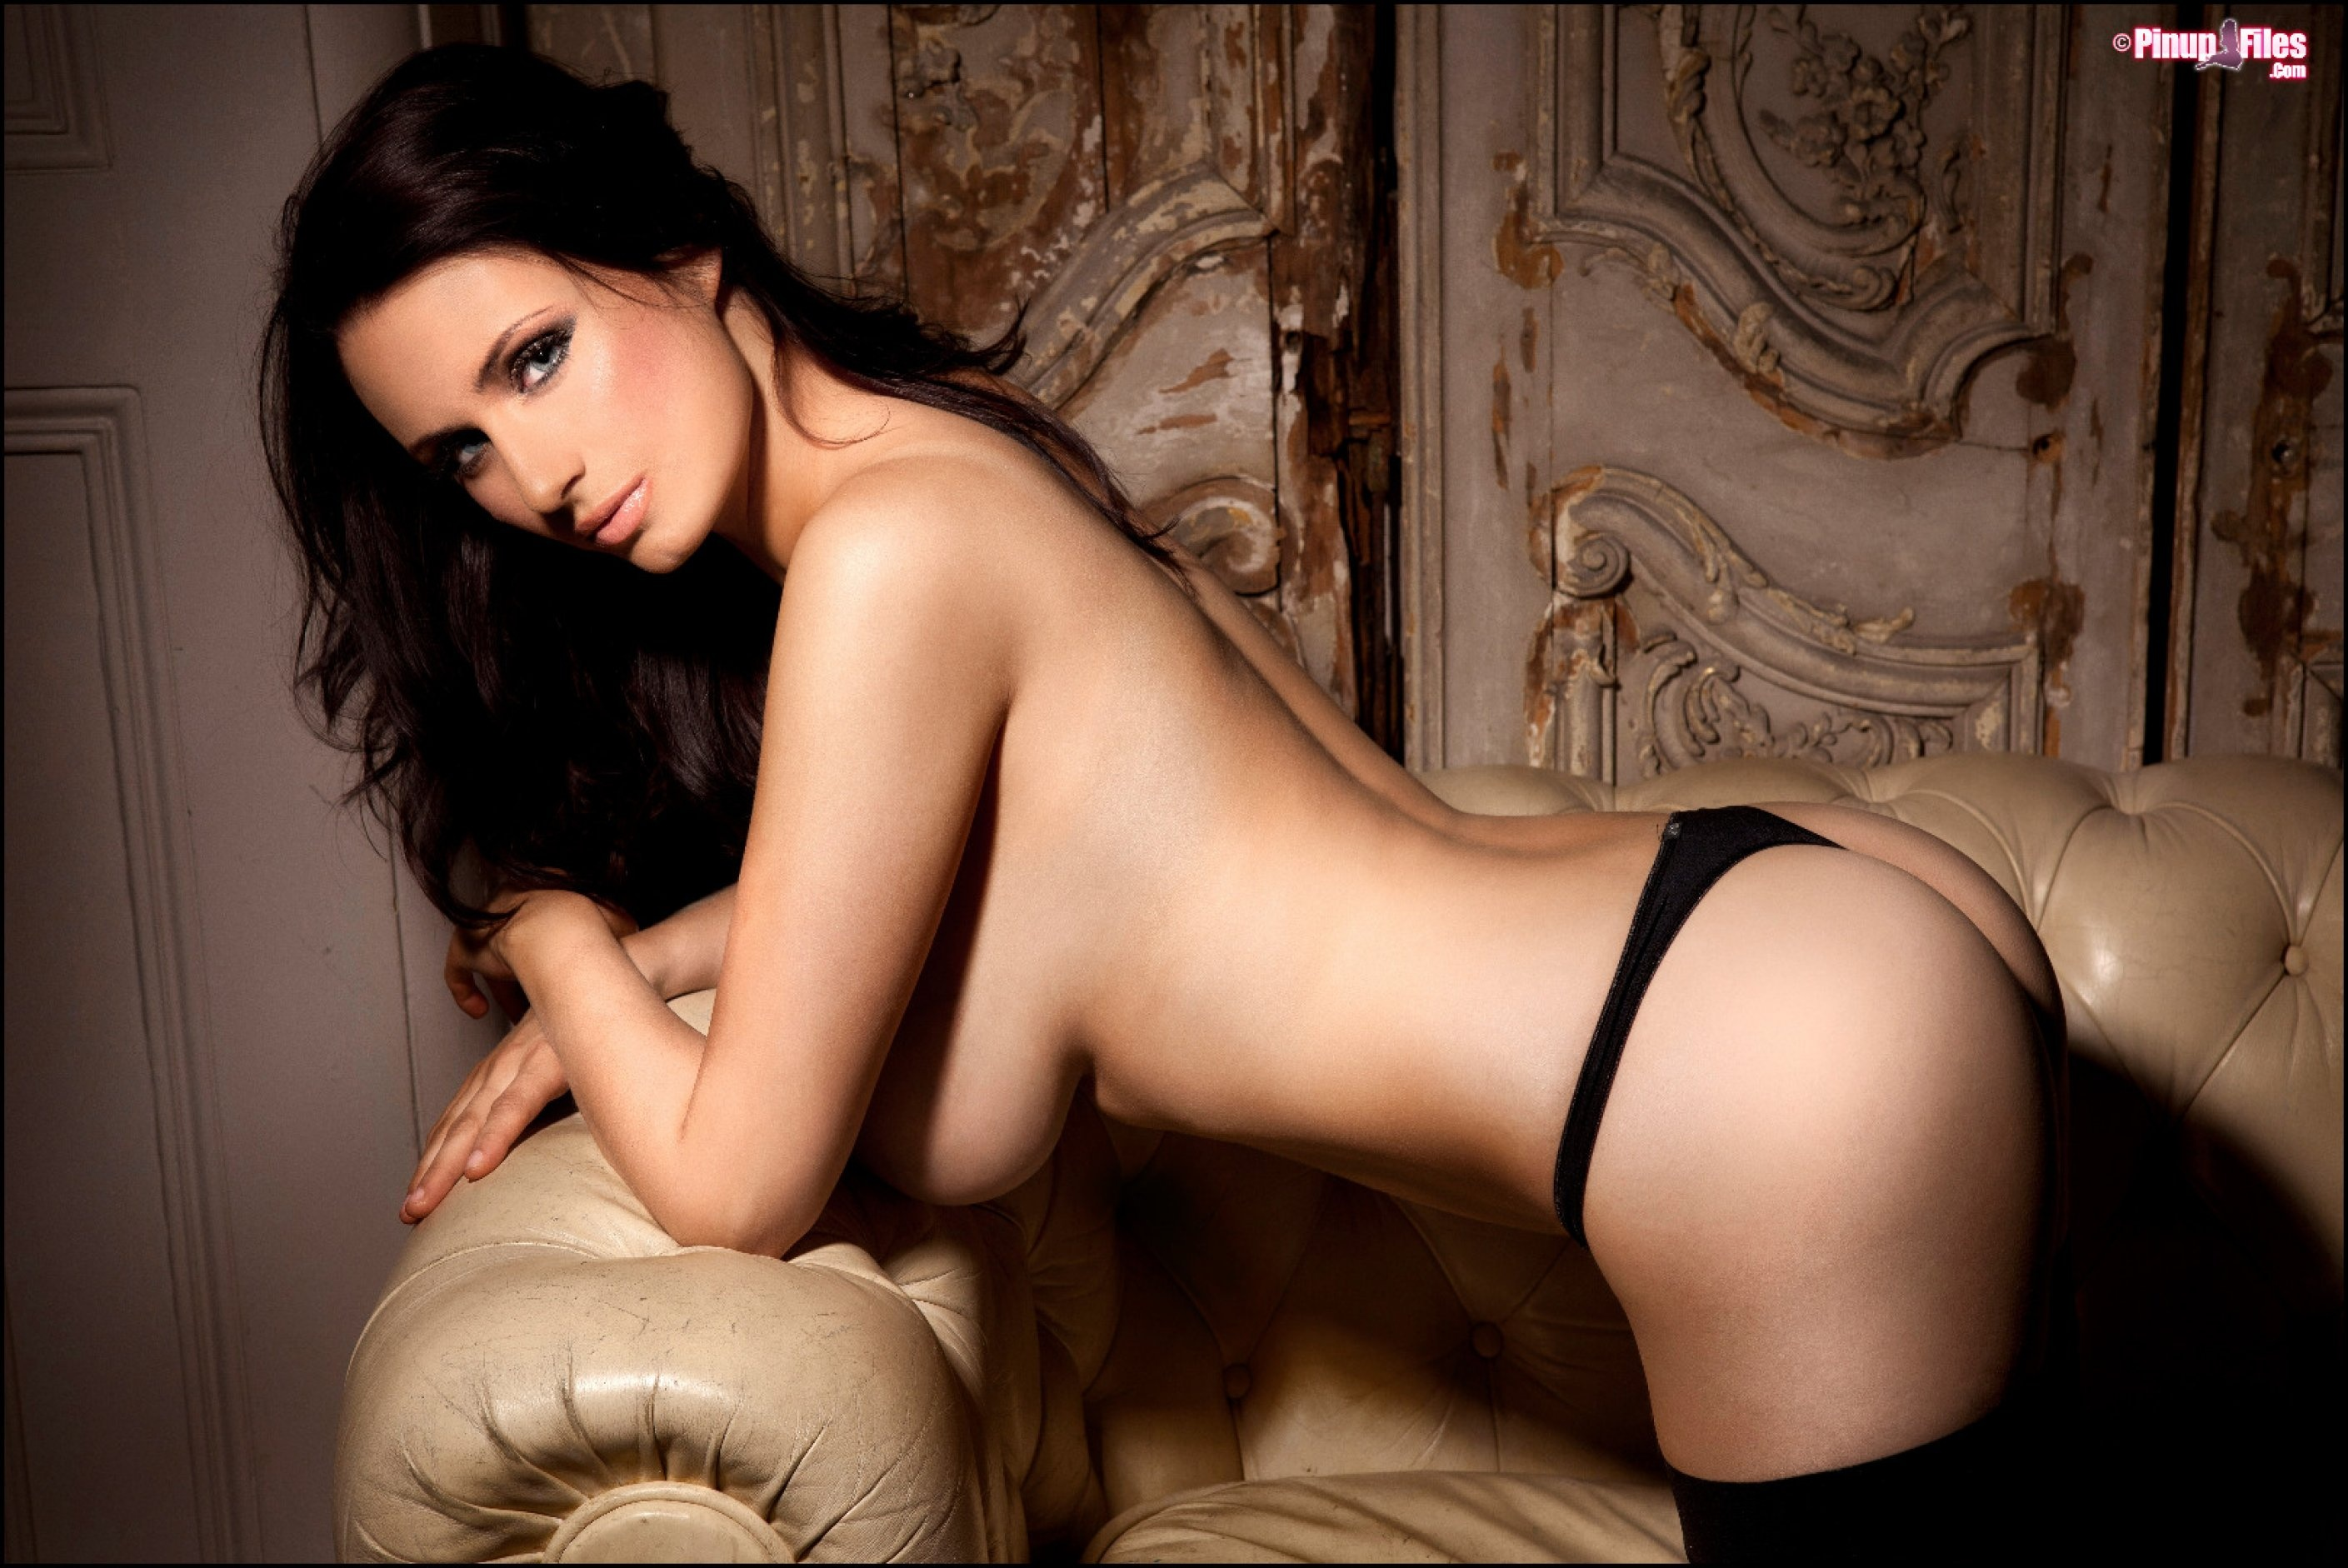 Messages sammy braddy big tits brunette nude model sorry, this